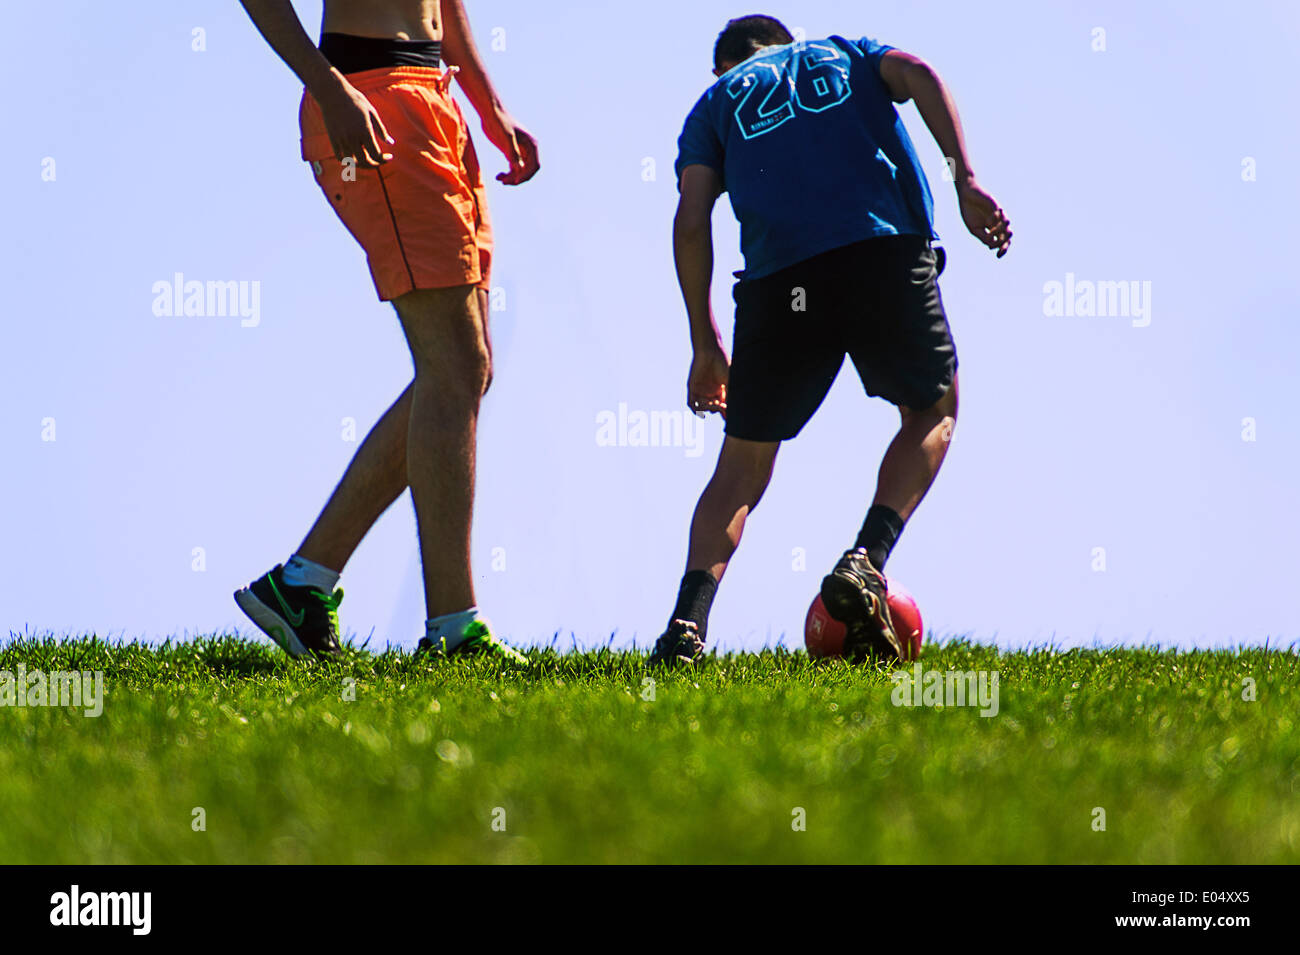 Europe, France, Alpes-Maritimes, Cannes. Playing football. Stock Photo